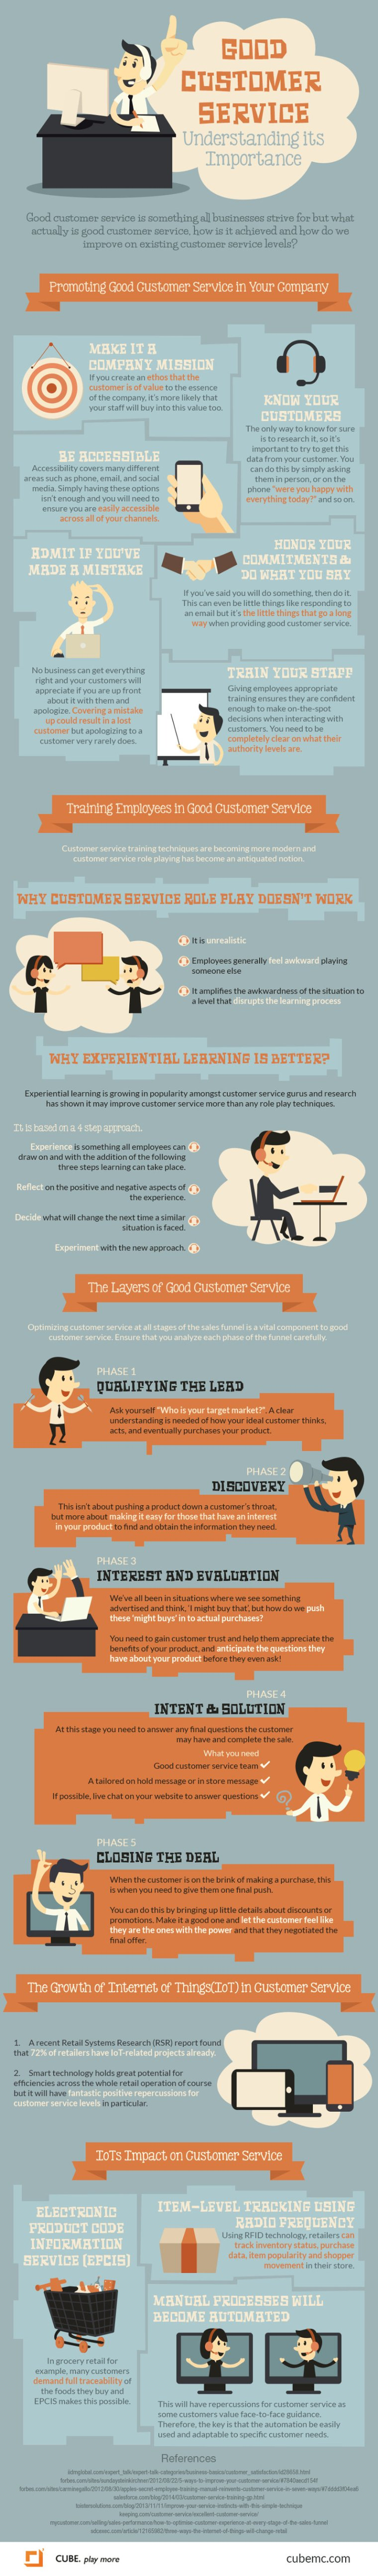 Good customer service - infographic